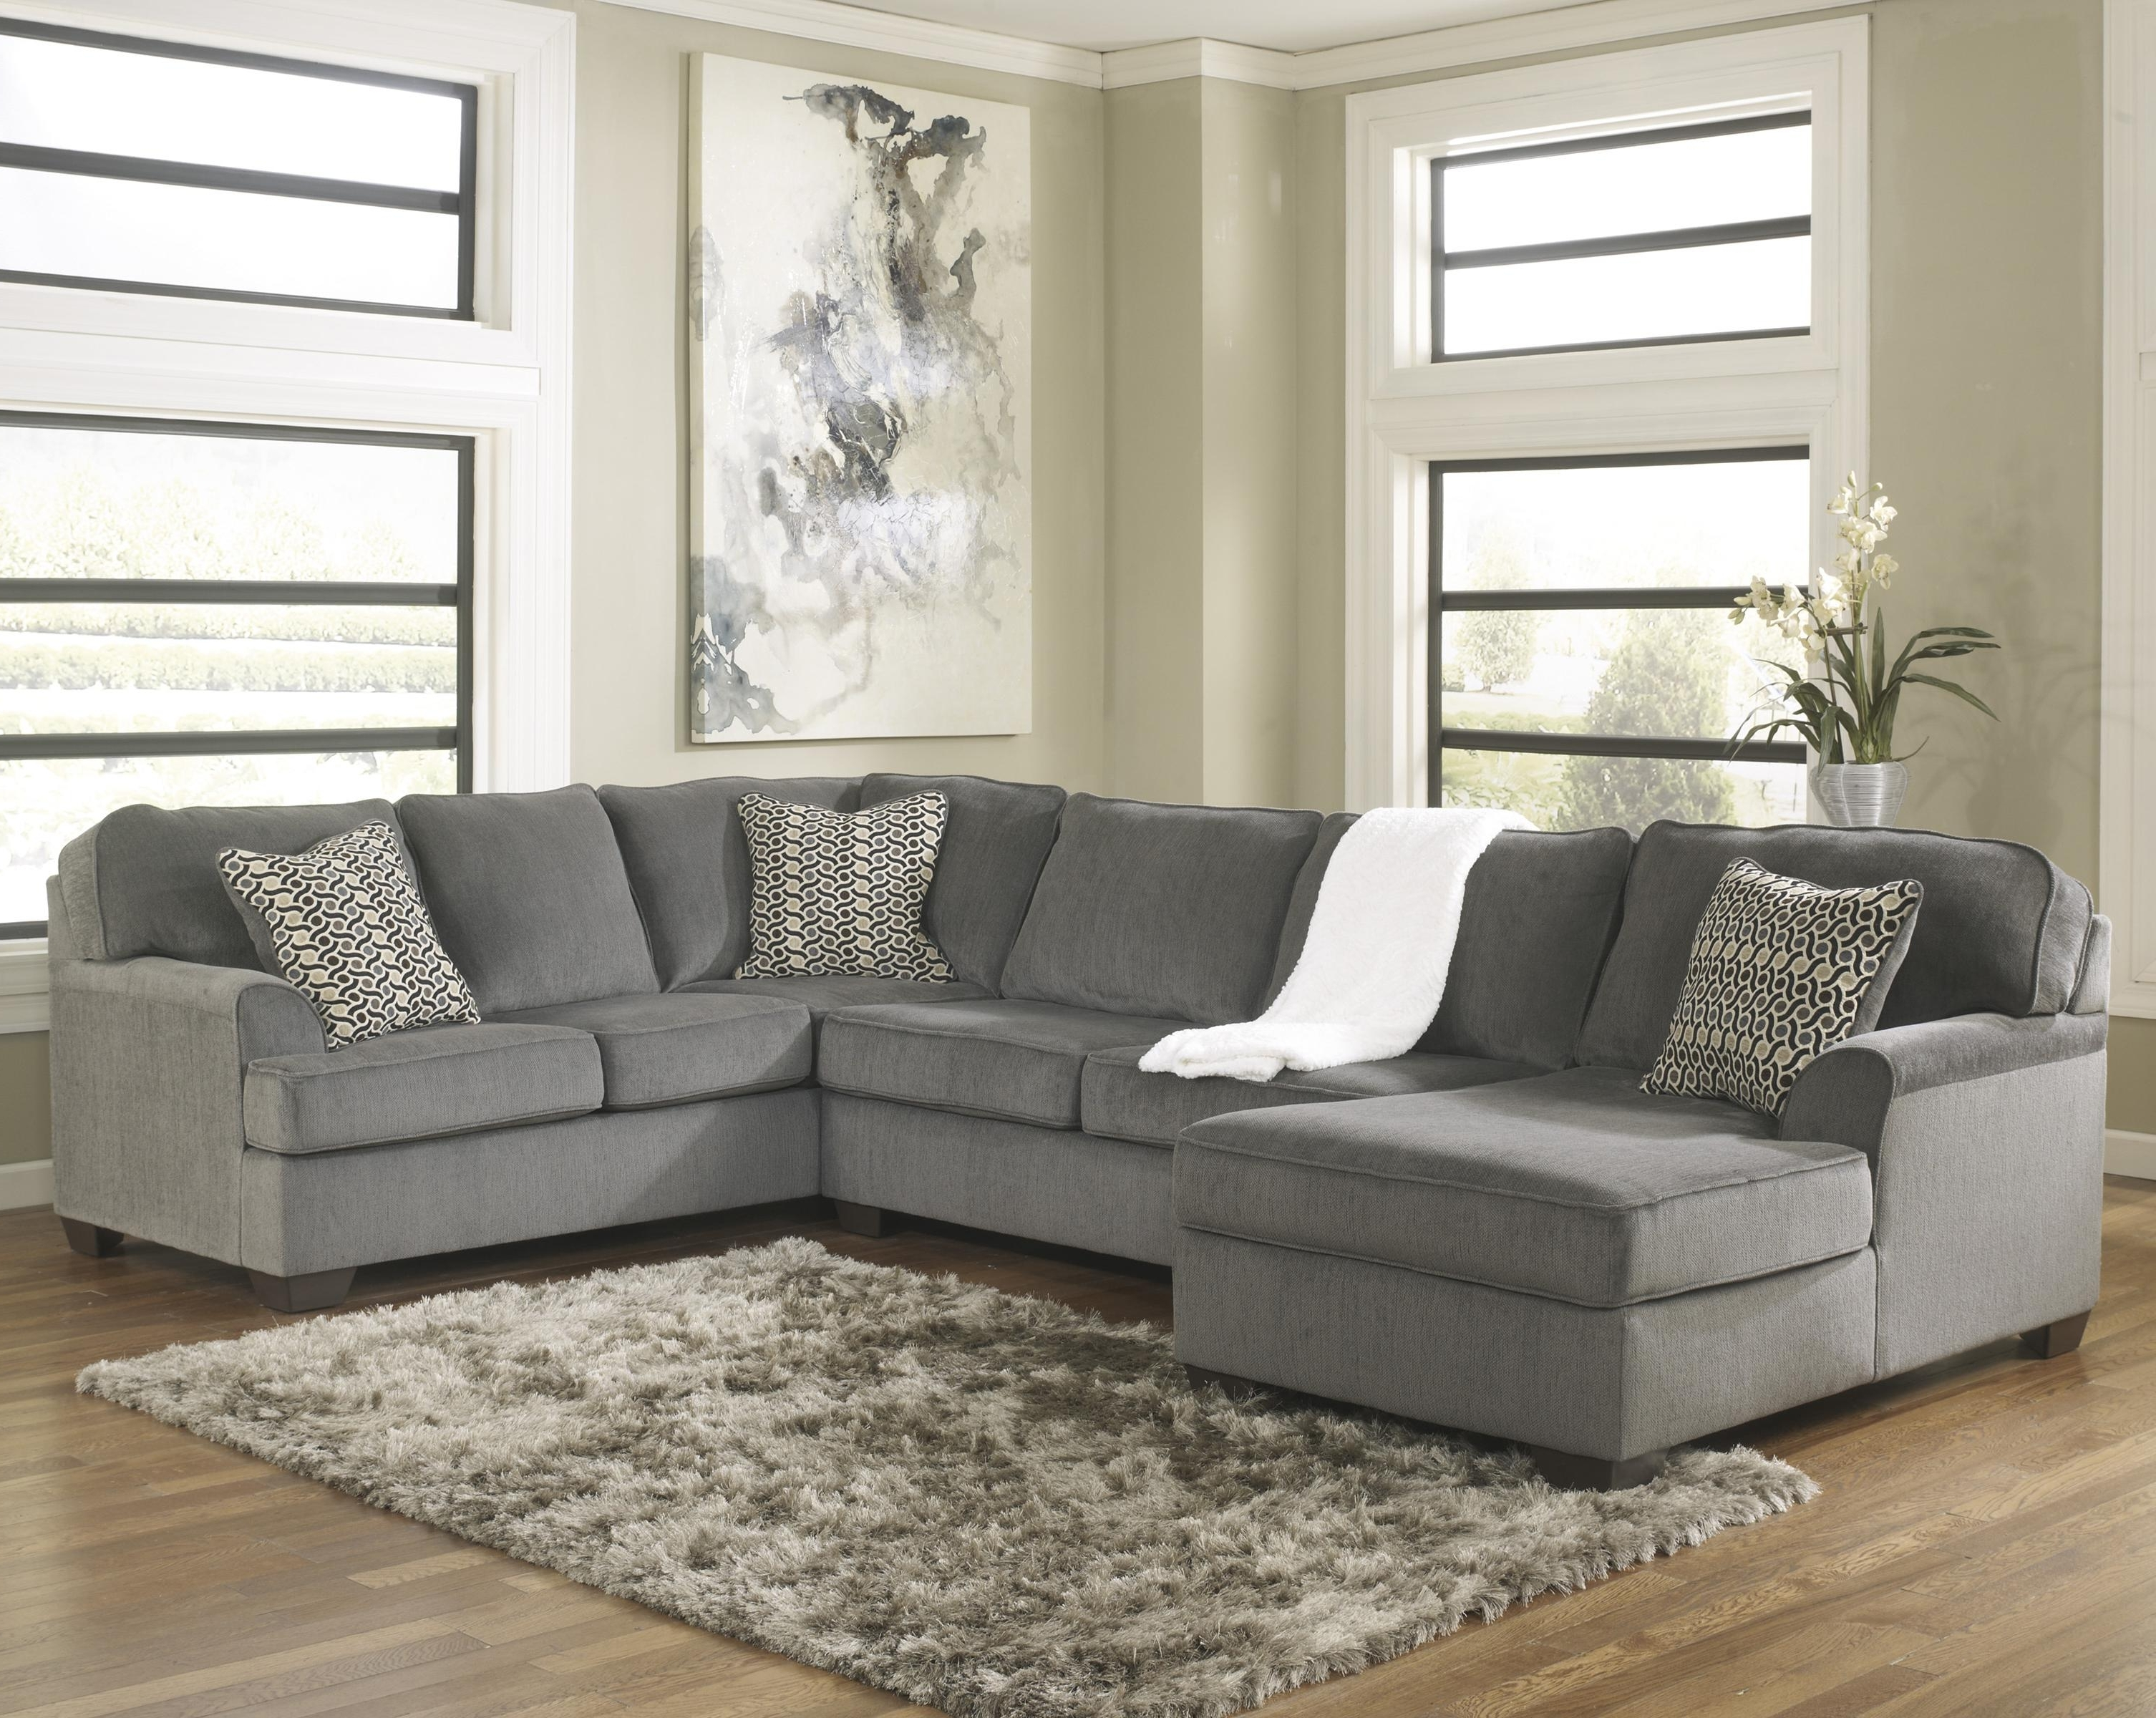 Ashley Furniture Sectional Sofas – Mforum Pertaining To Fashionable 10X8 Sectional Sofas (View 6 of 20)